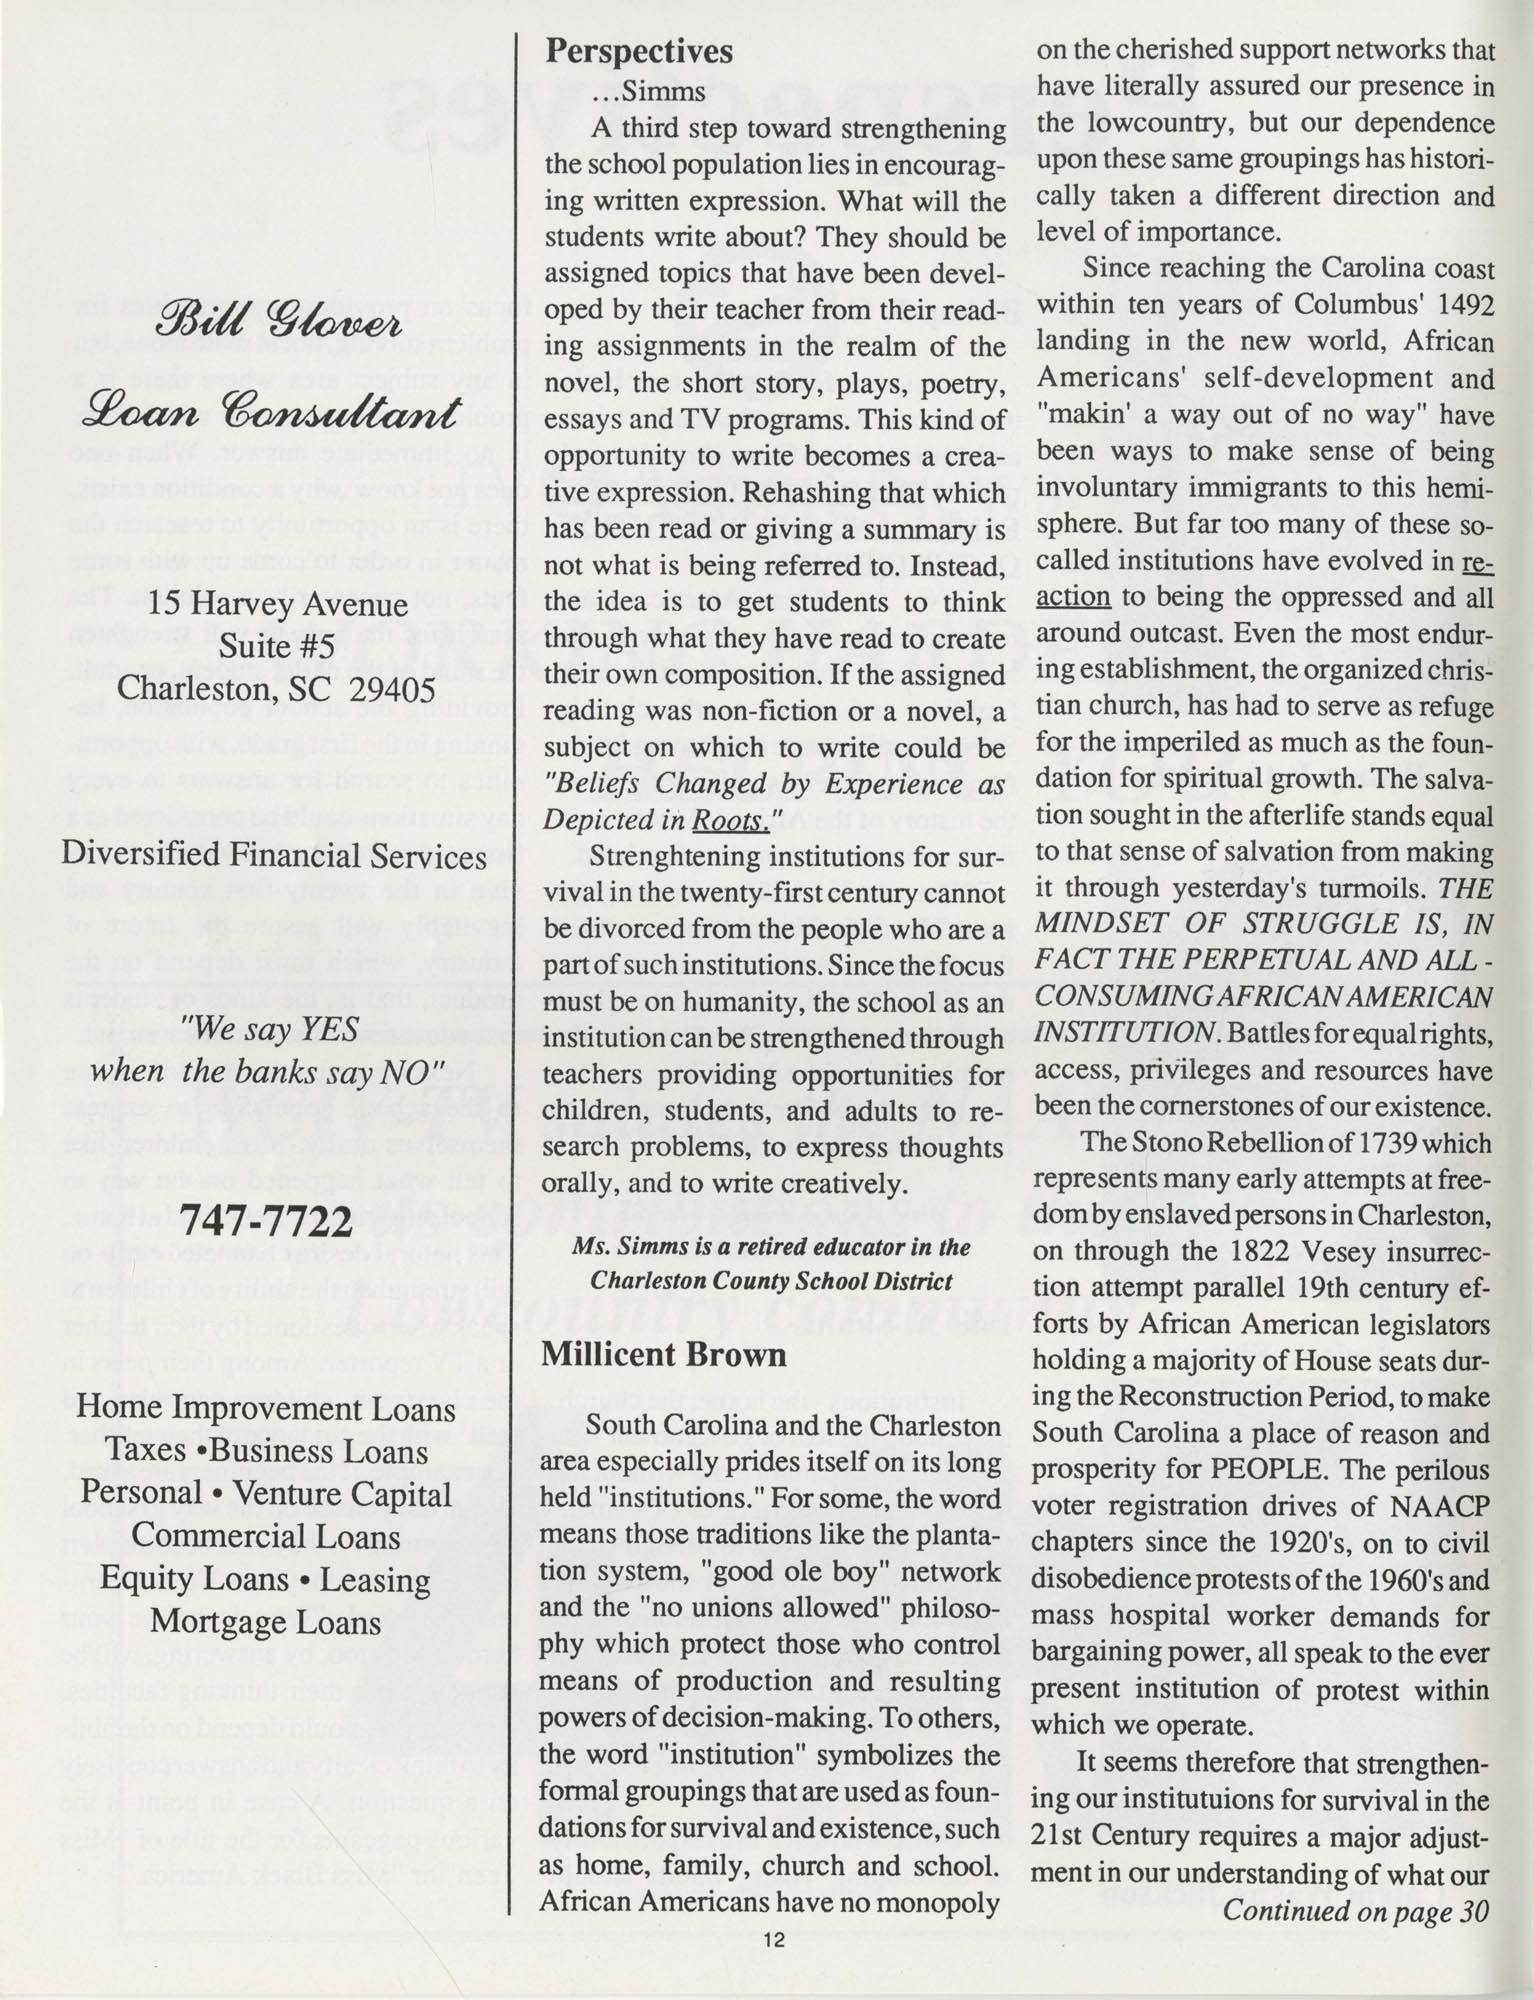 1990 NAACP Freedom Fund Magazine, Charleston Branch of the NAACP, 74th Anniversary, Page 12